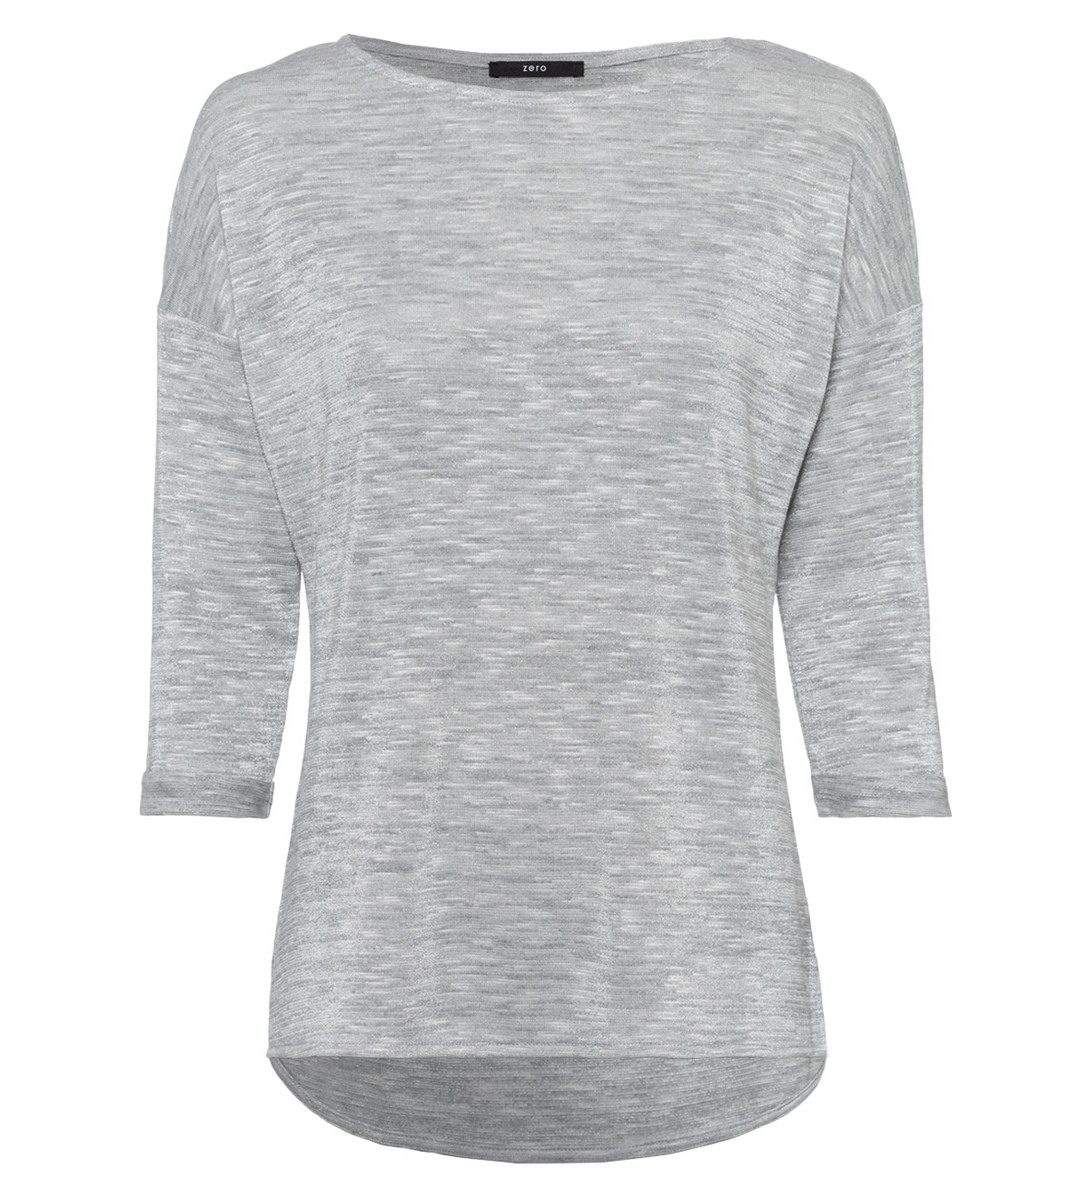 Shirt im Glitzer-Look in stone grey-m